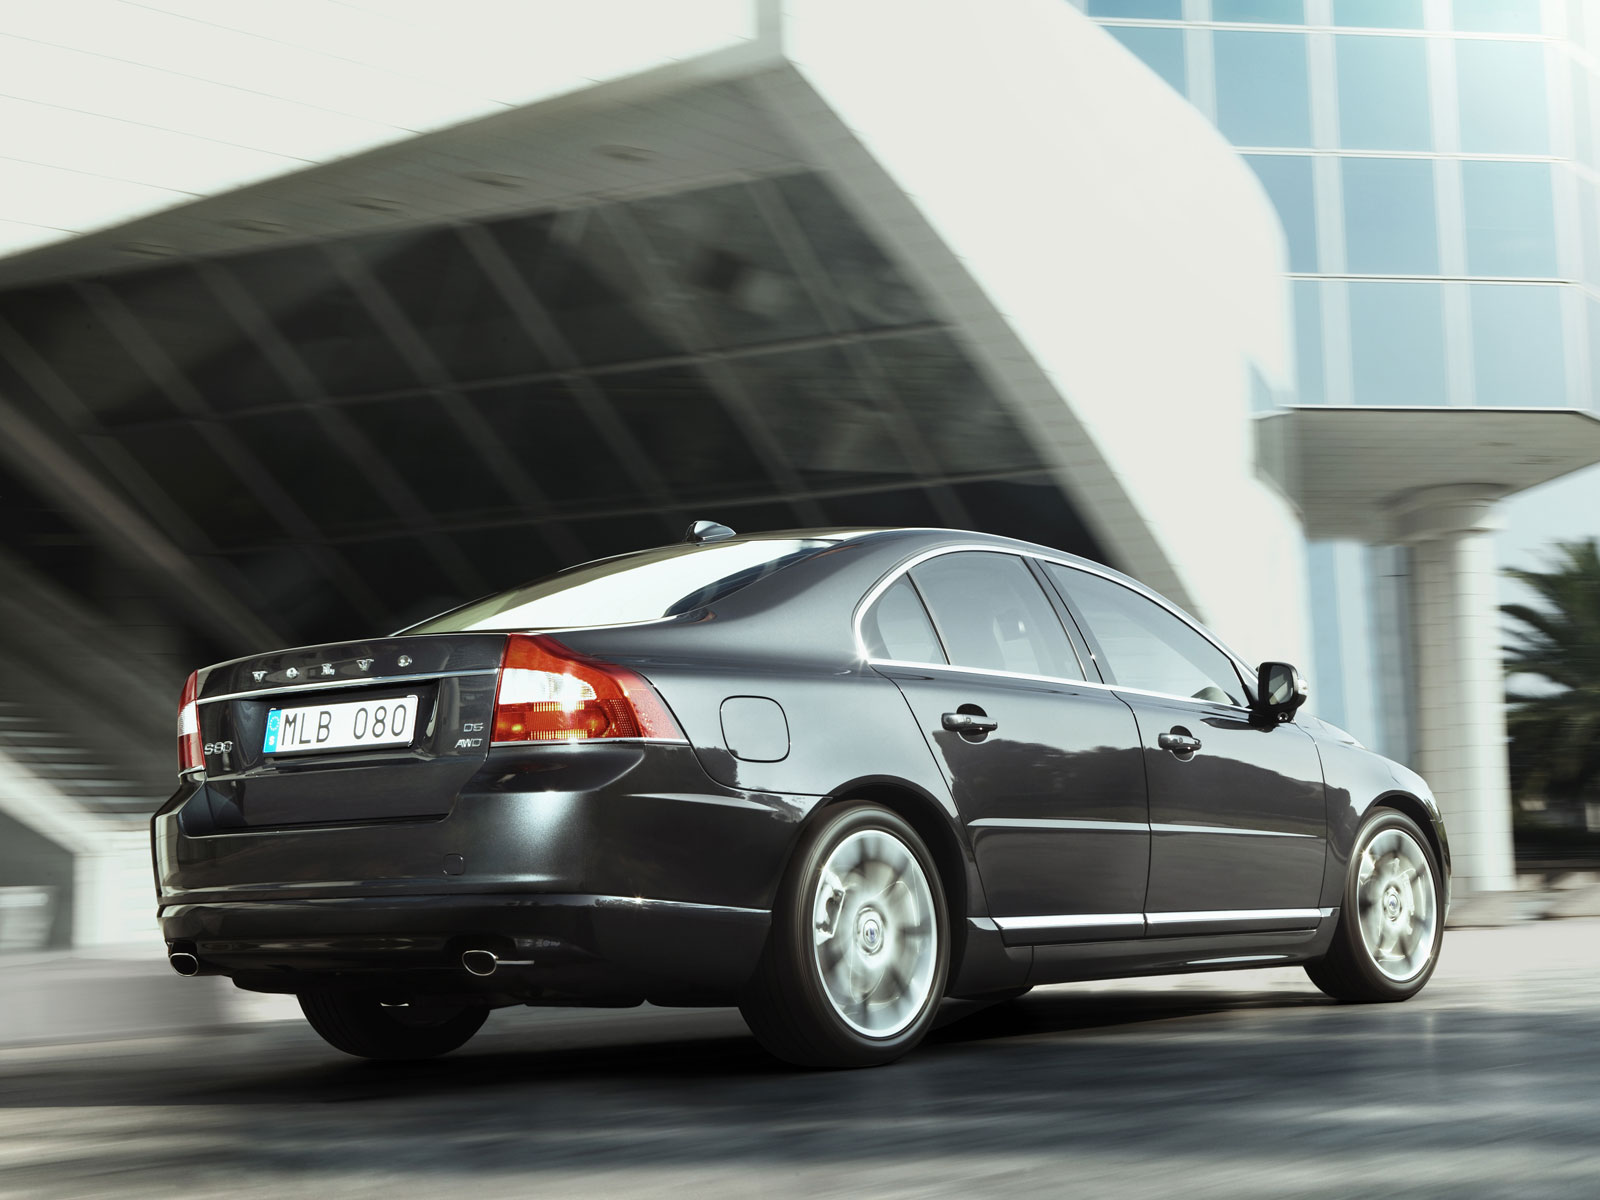 2006 volvo s80 3 2 related infomation specifications. Black Bedroom Furniture Sets. Home Design Ideas